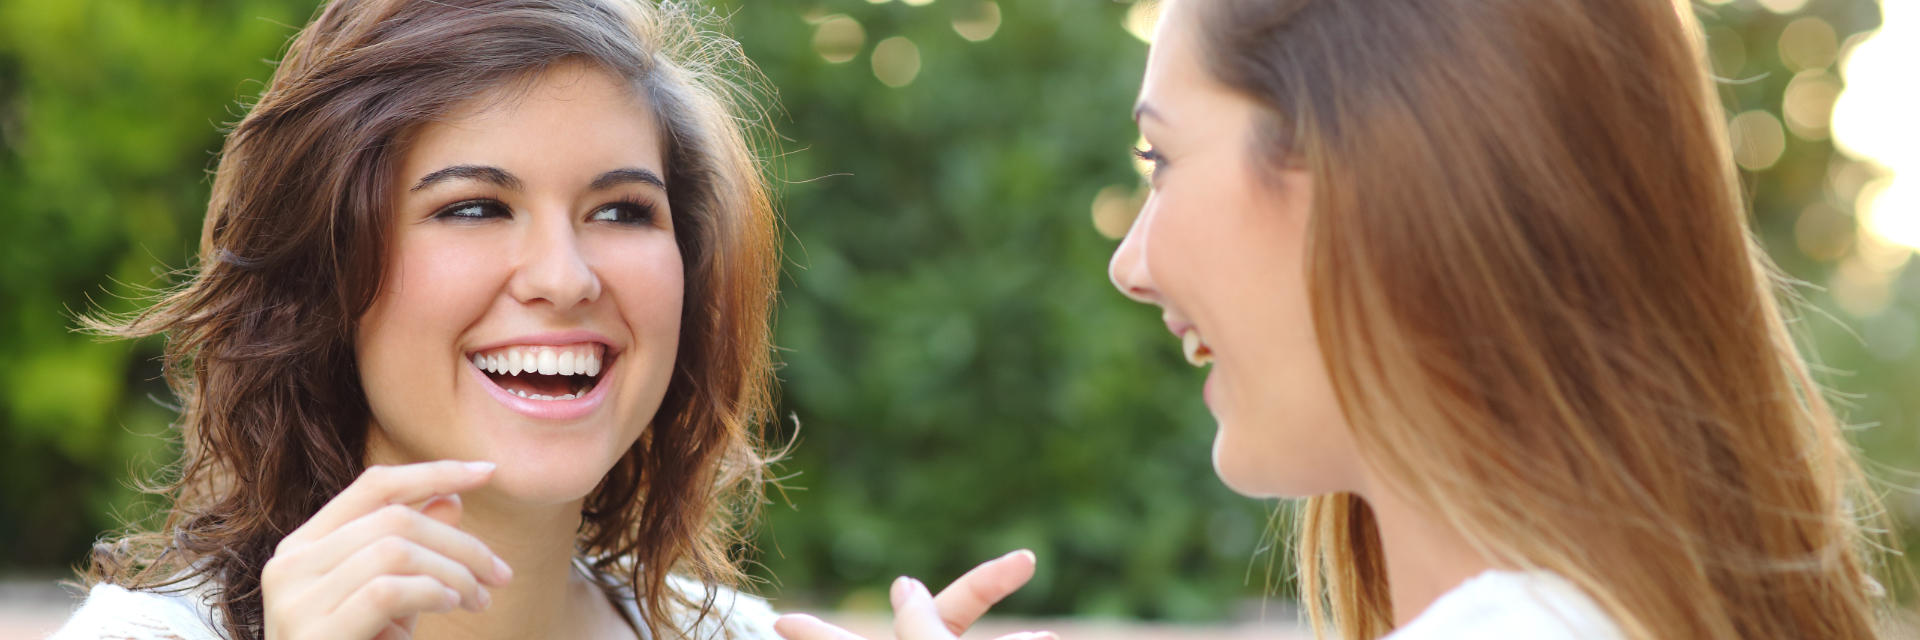 Two cheerful young women with perfect smiles chatting in the park.